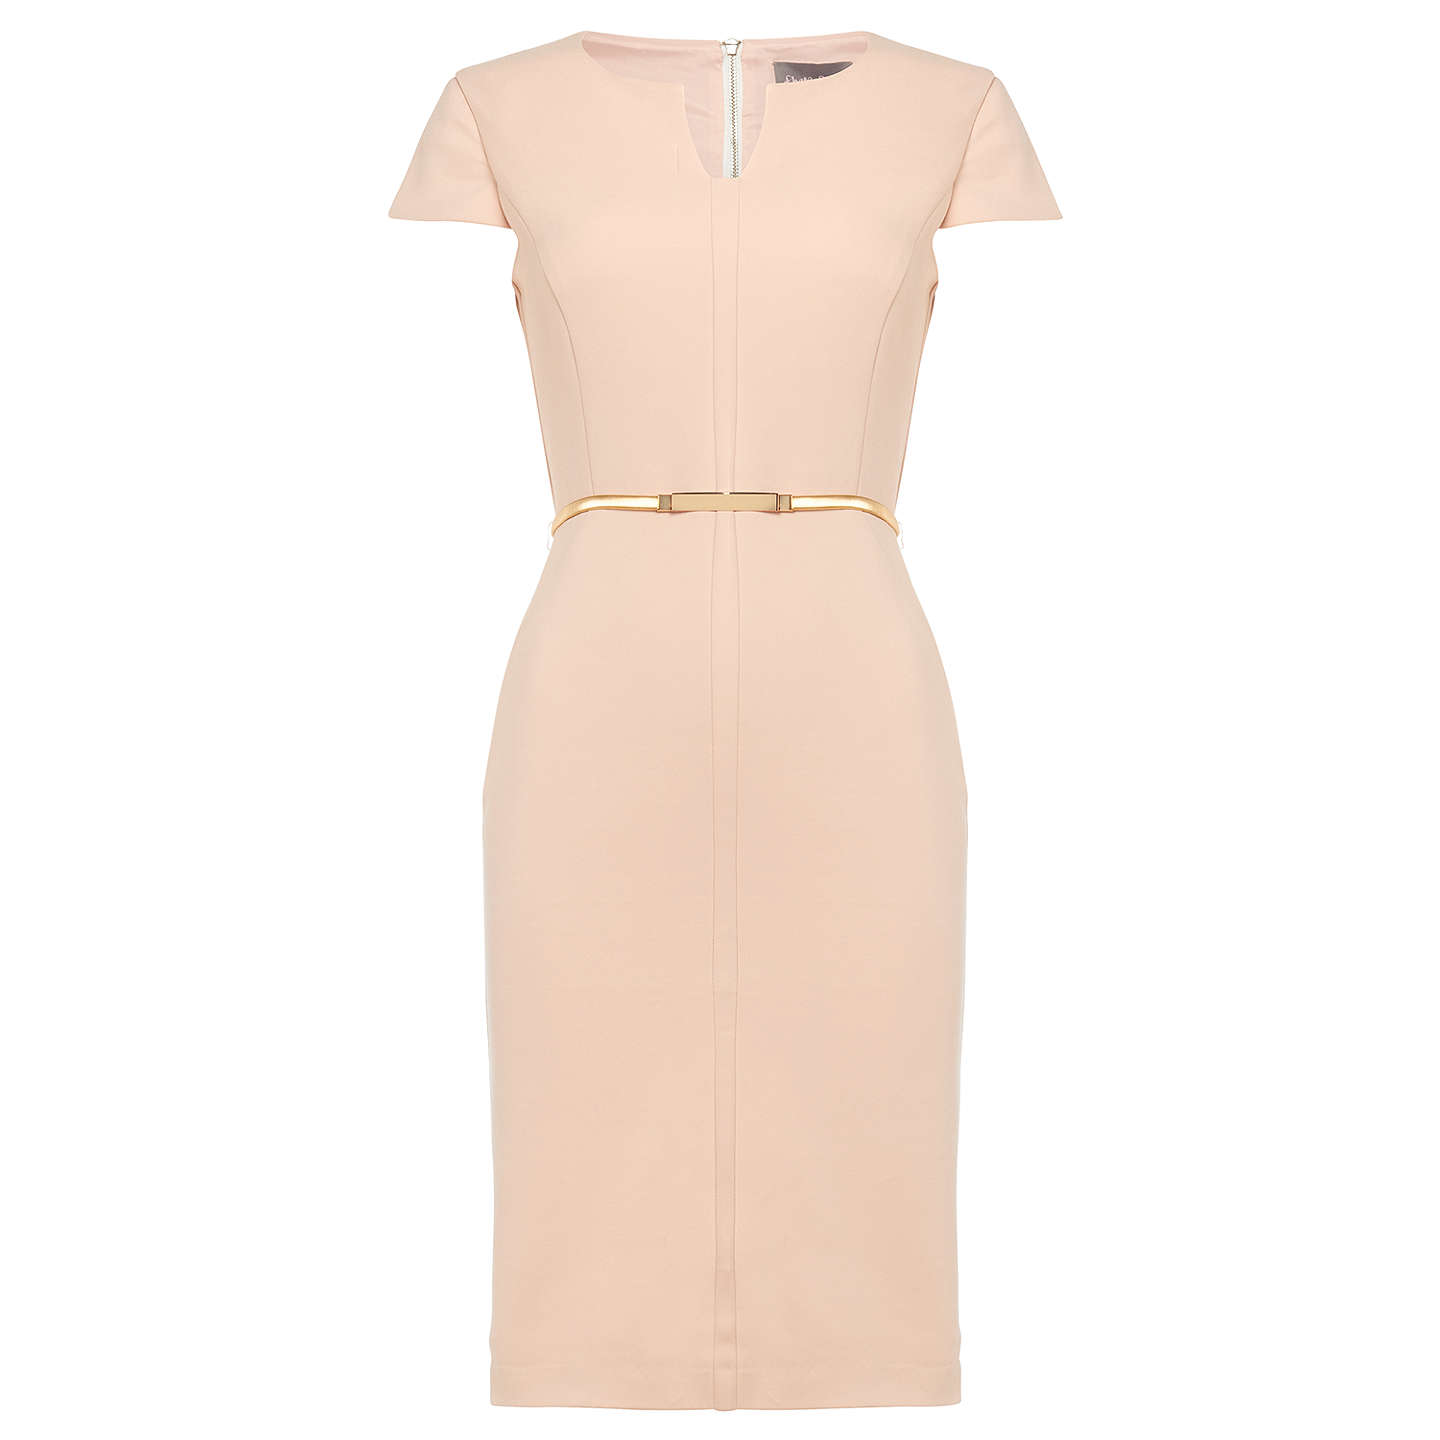 BuyPhase Eight Morgan Belted Dress, Cameo, 8 Online at johnlewis.com